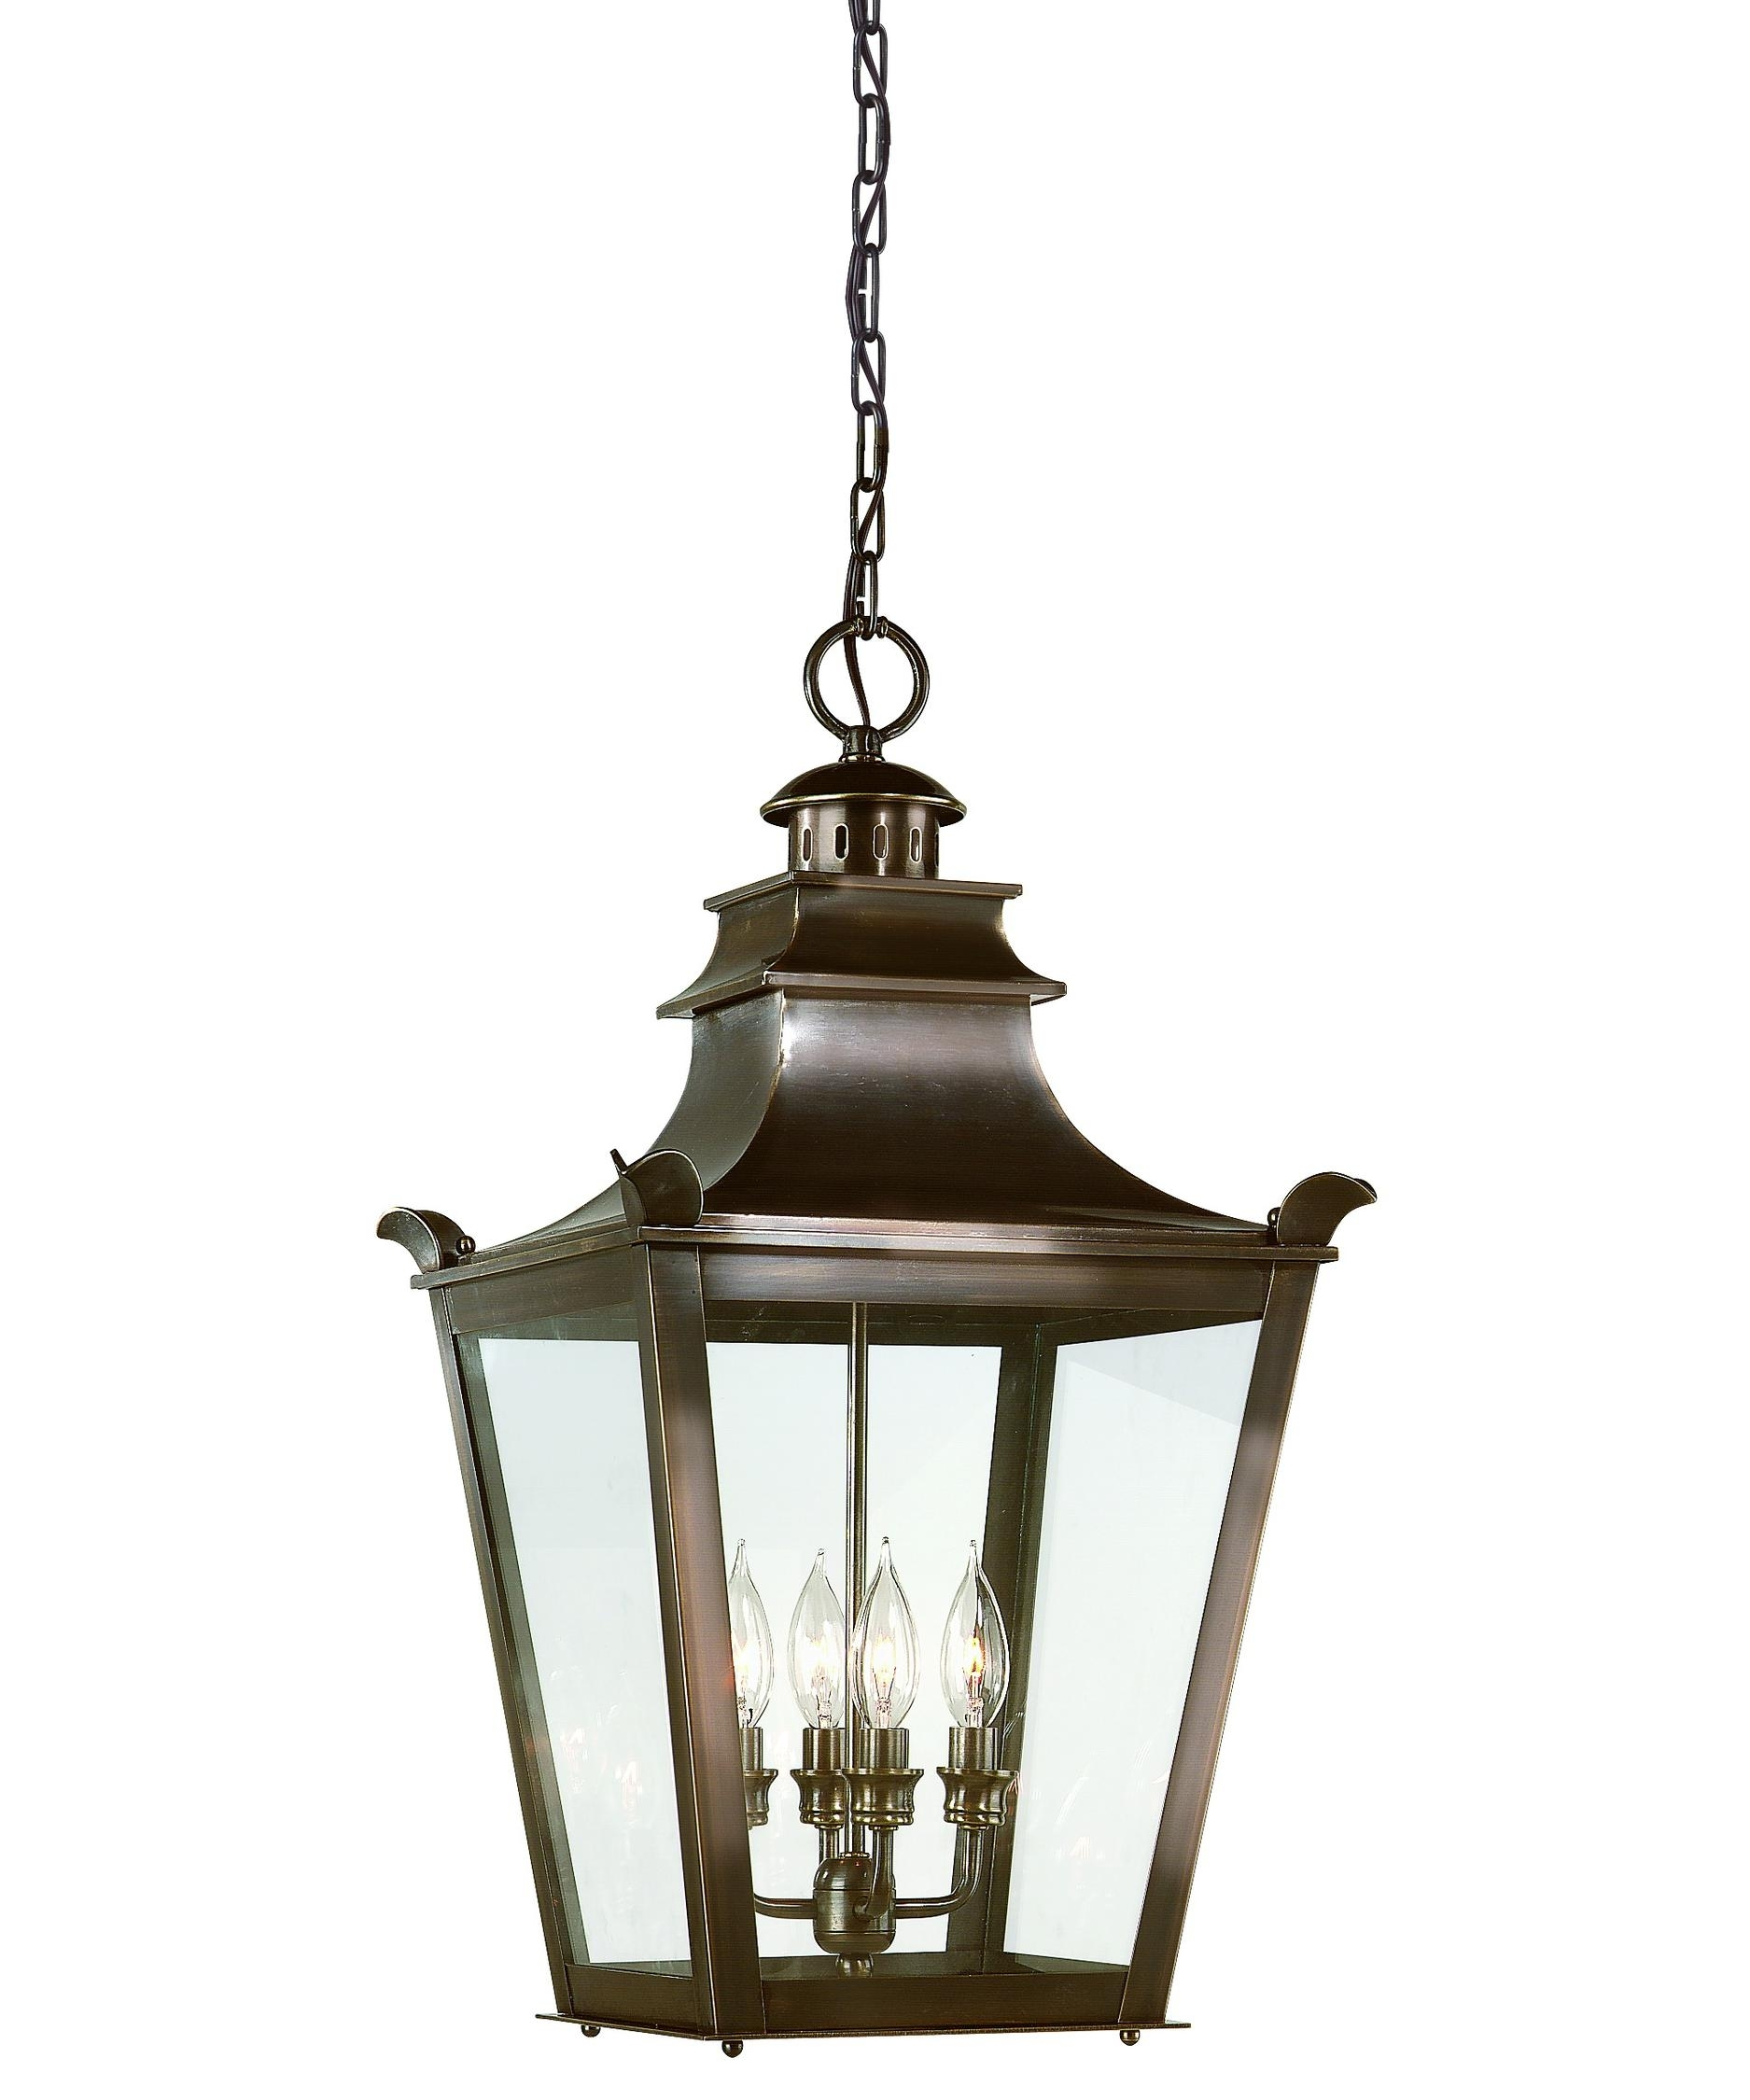 Troy Lighting F9499 Dorchester 14 Inch Wide 4 Light Outdoor Hanging With Regard To Outdoor Hanging Glass Lights (#15 of 15)